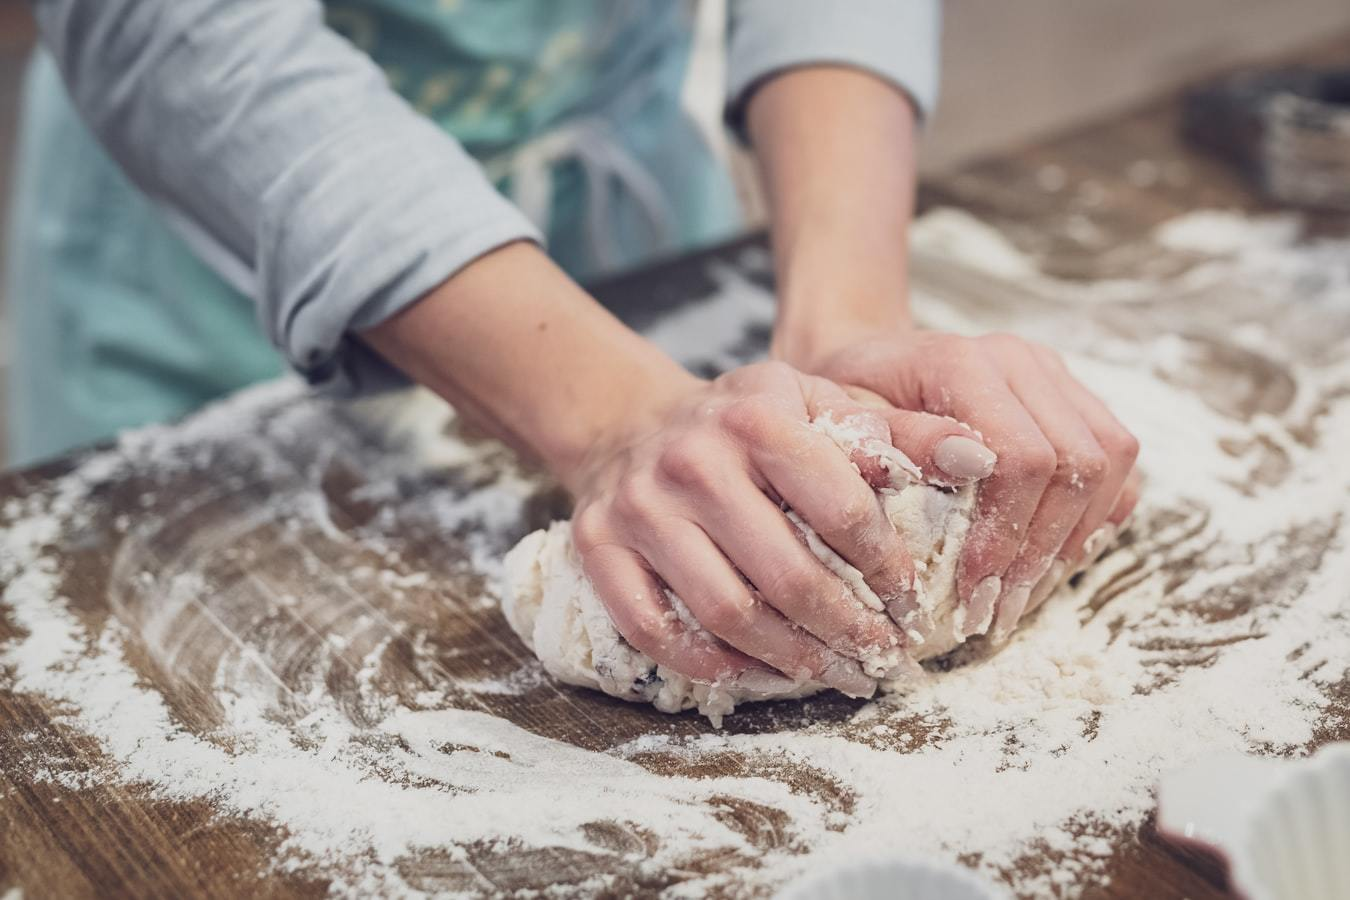 a person standing and making dough